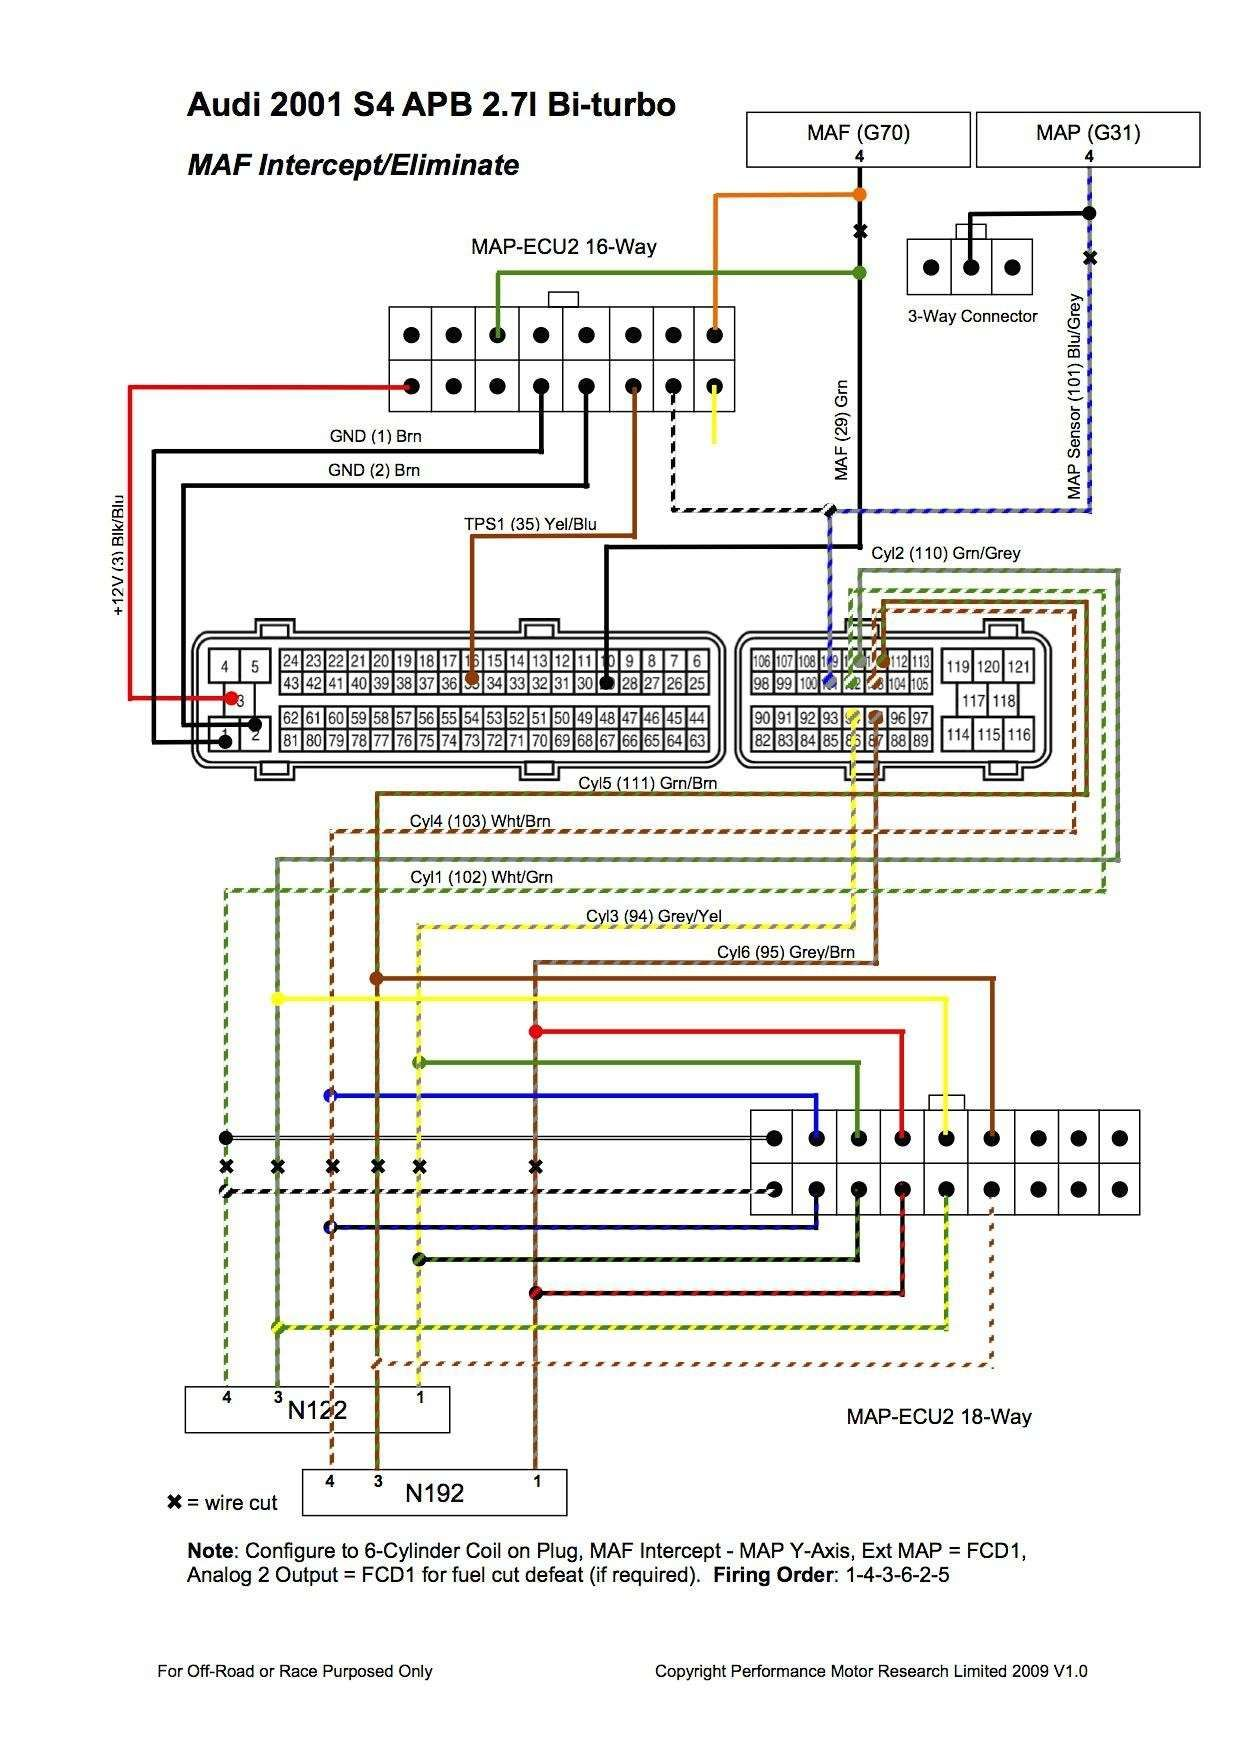 1955 ford horn wiring wiring diagrams lolhorn wiring diagram of 76 little wiring diagrams car horn [ 1239 x 1754 Pixel ]